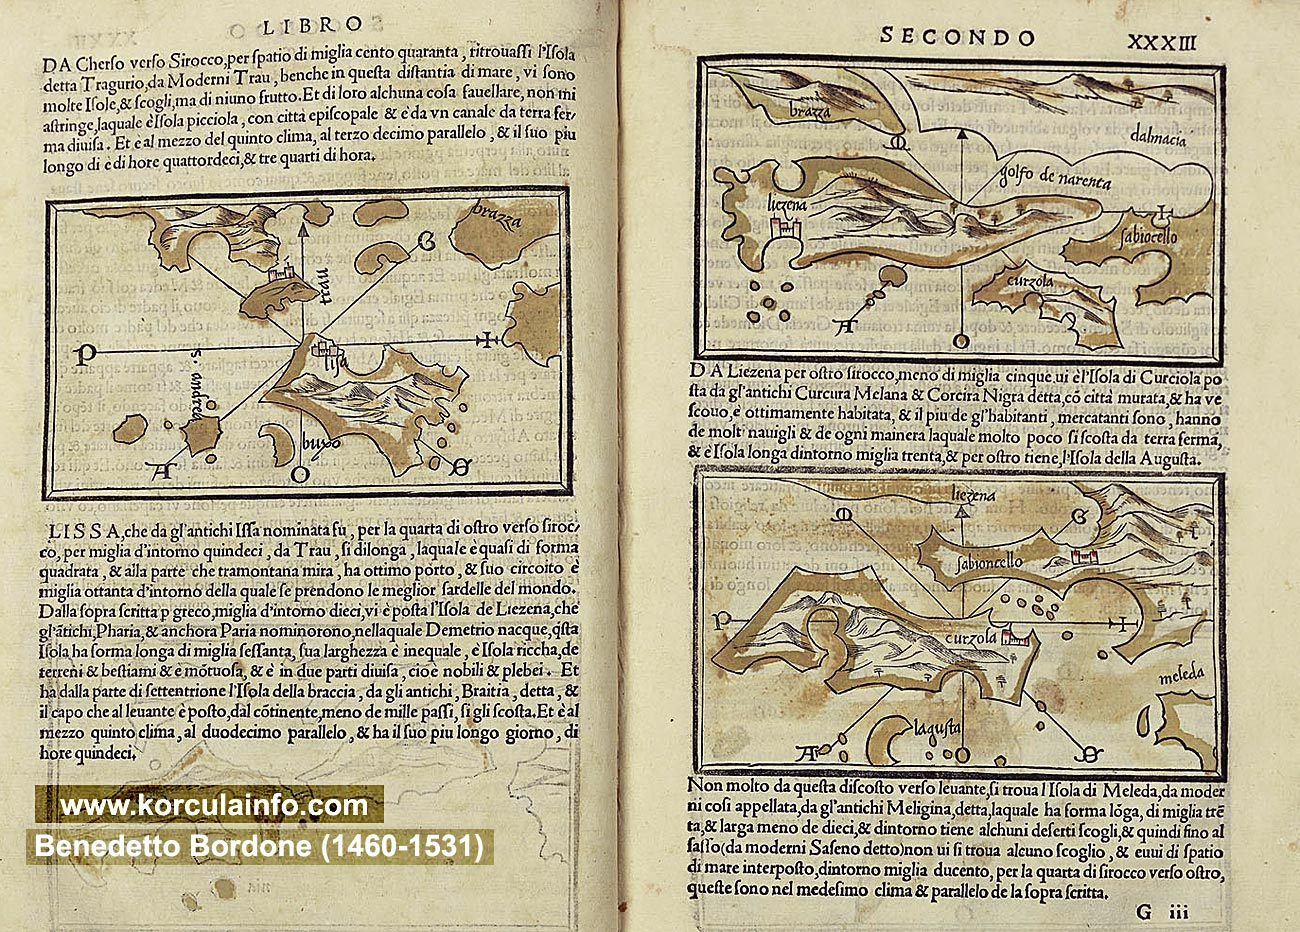 Map of Korcula and neighbouring islands (print 1534)